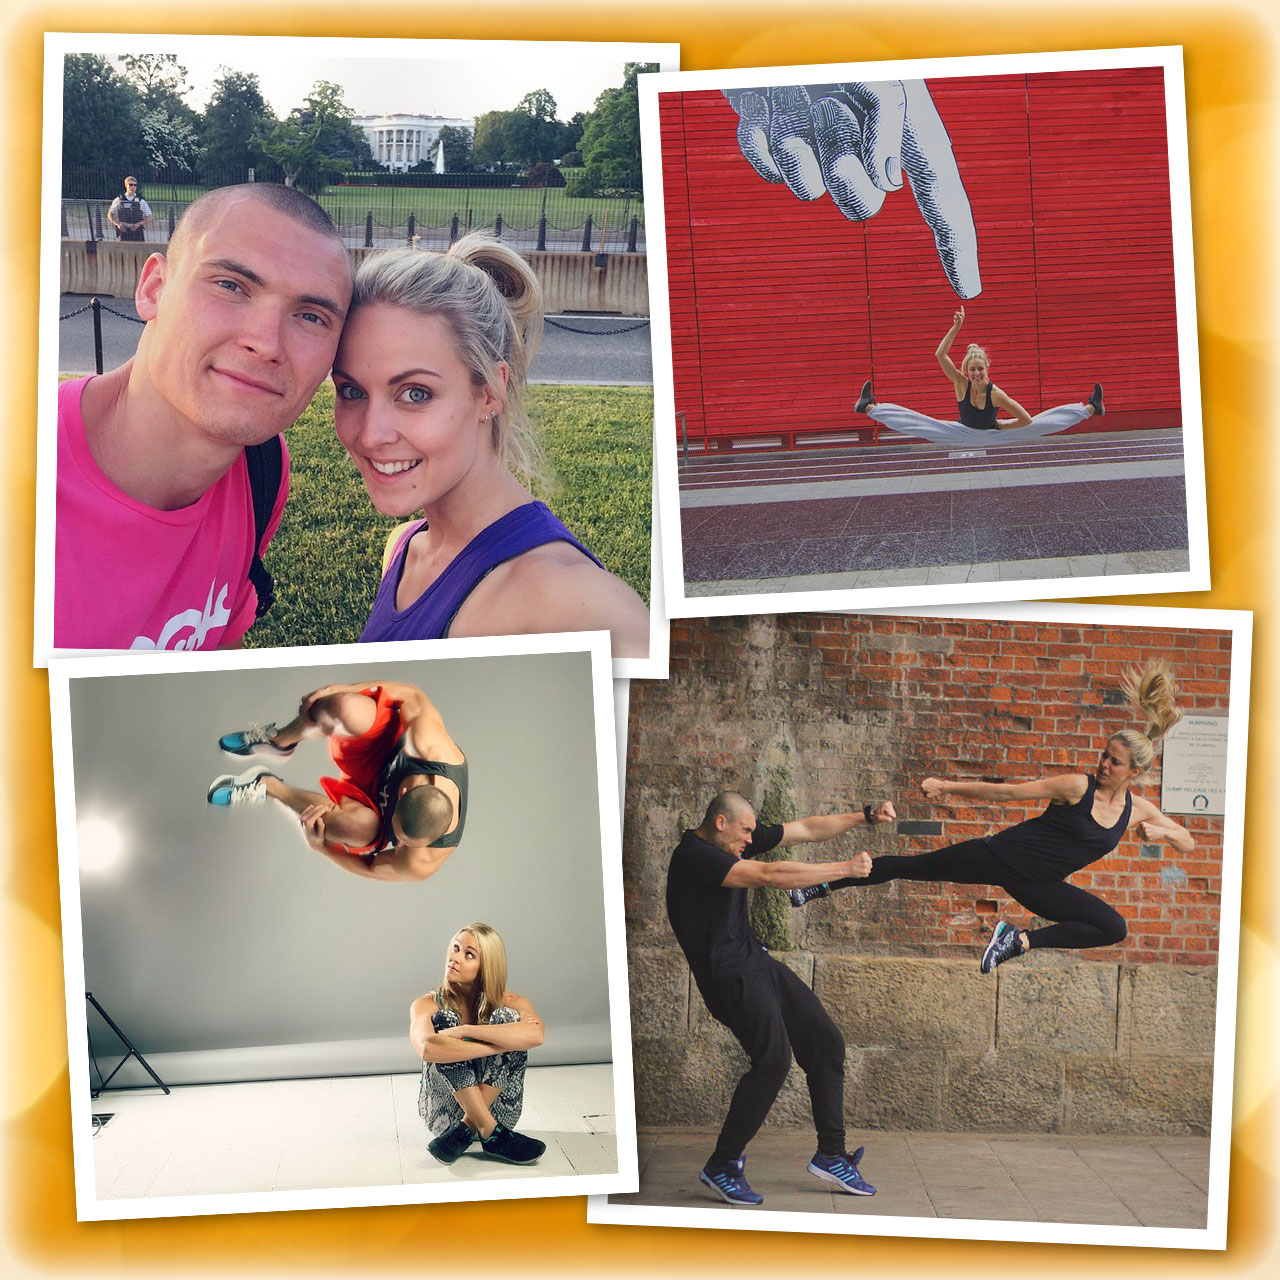 Erik Mukhametshin and Katie McDonnell are real-life ninja warriors